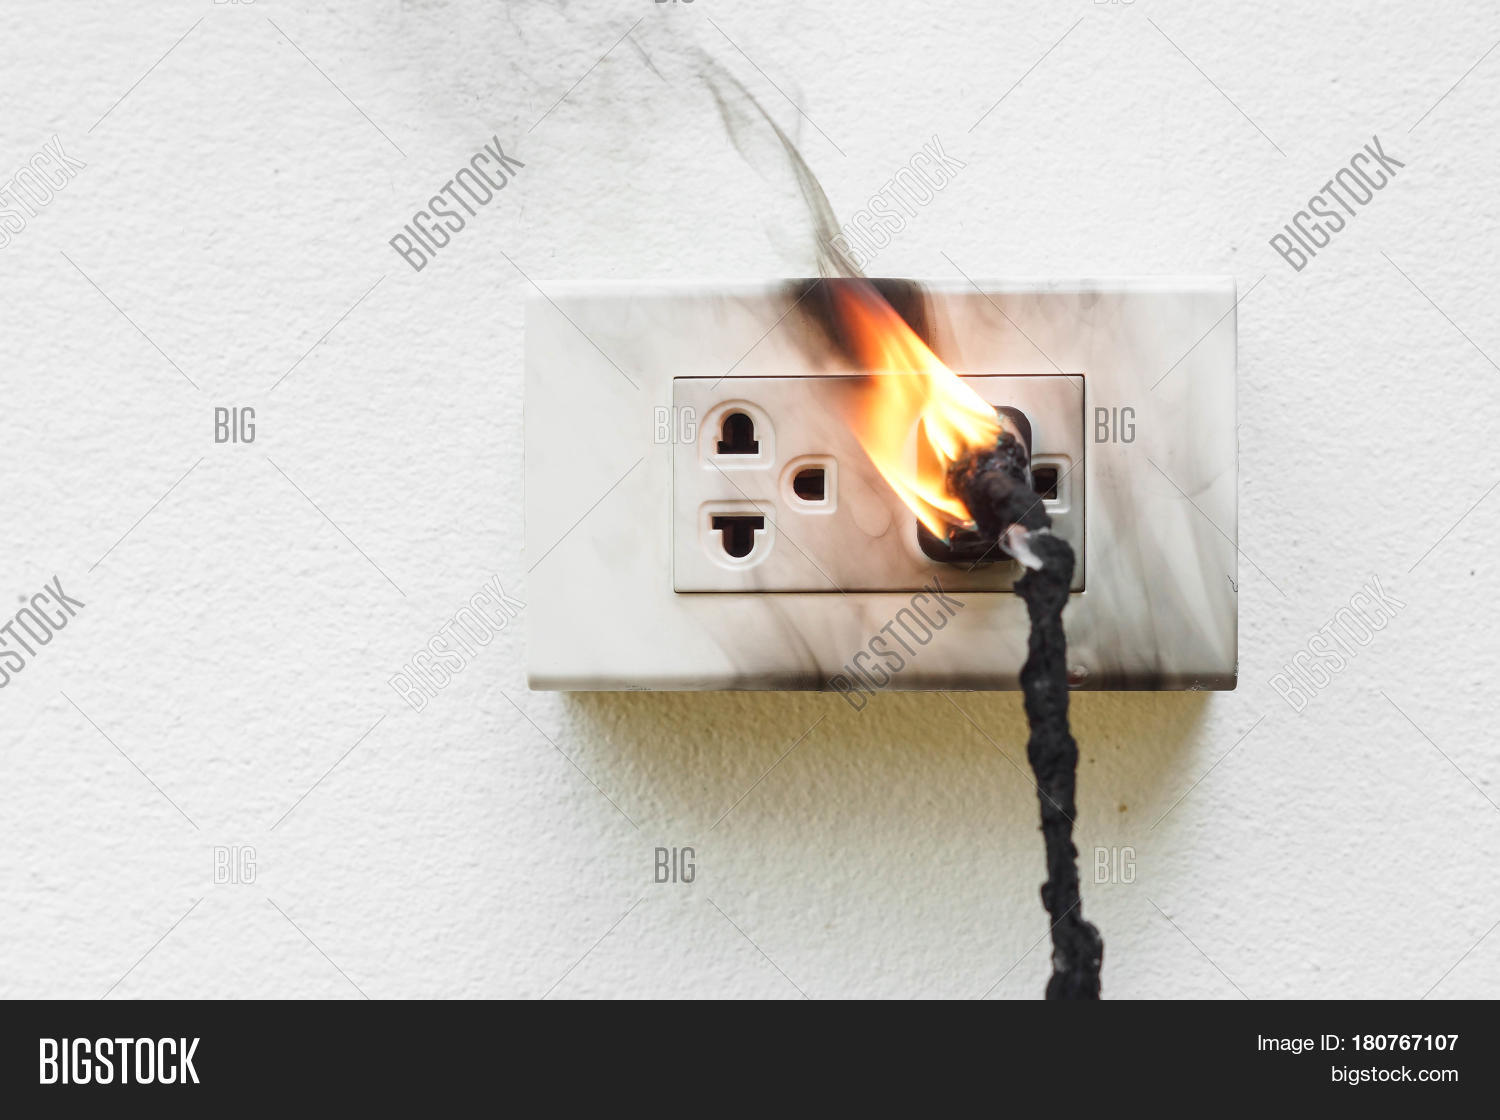 Electrical Short Circuit : Electricity short circuit image photo bigstock